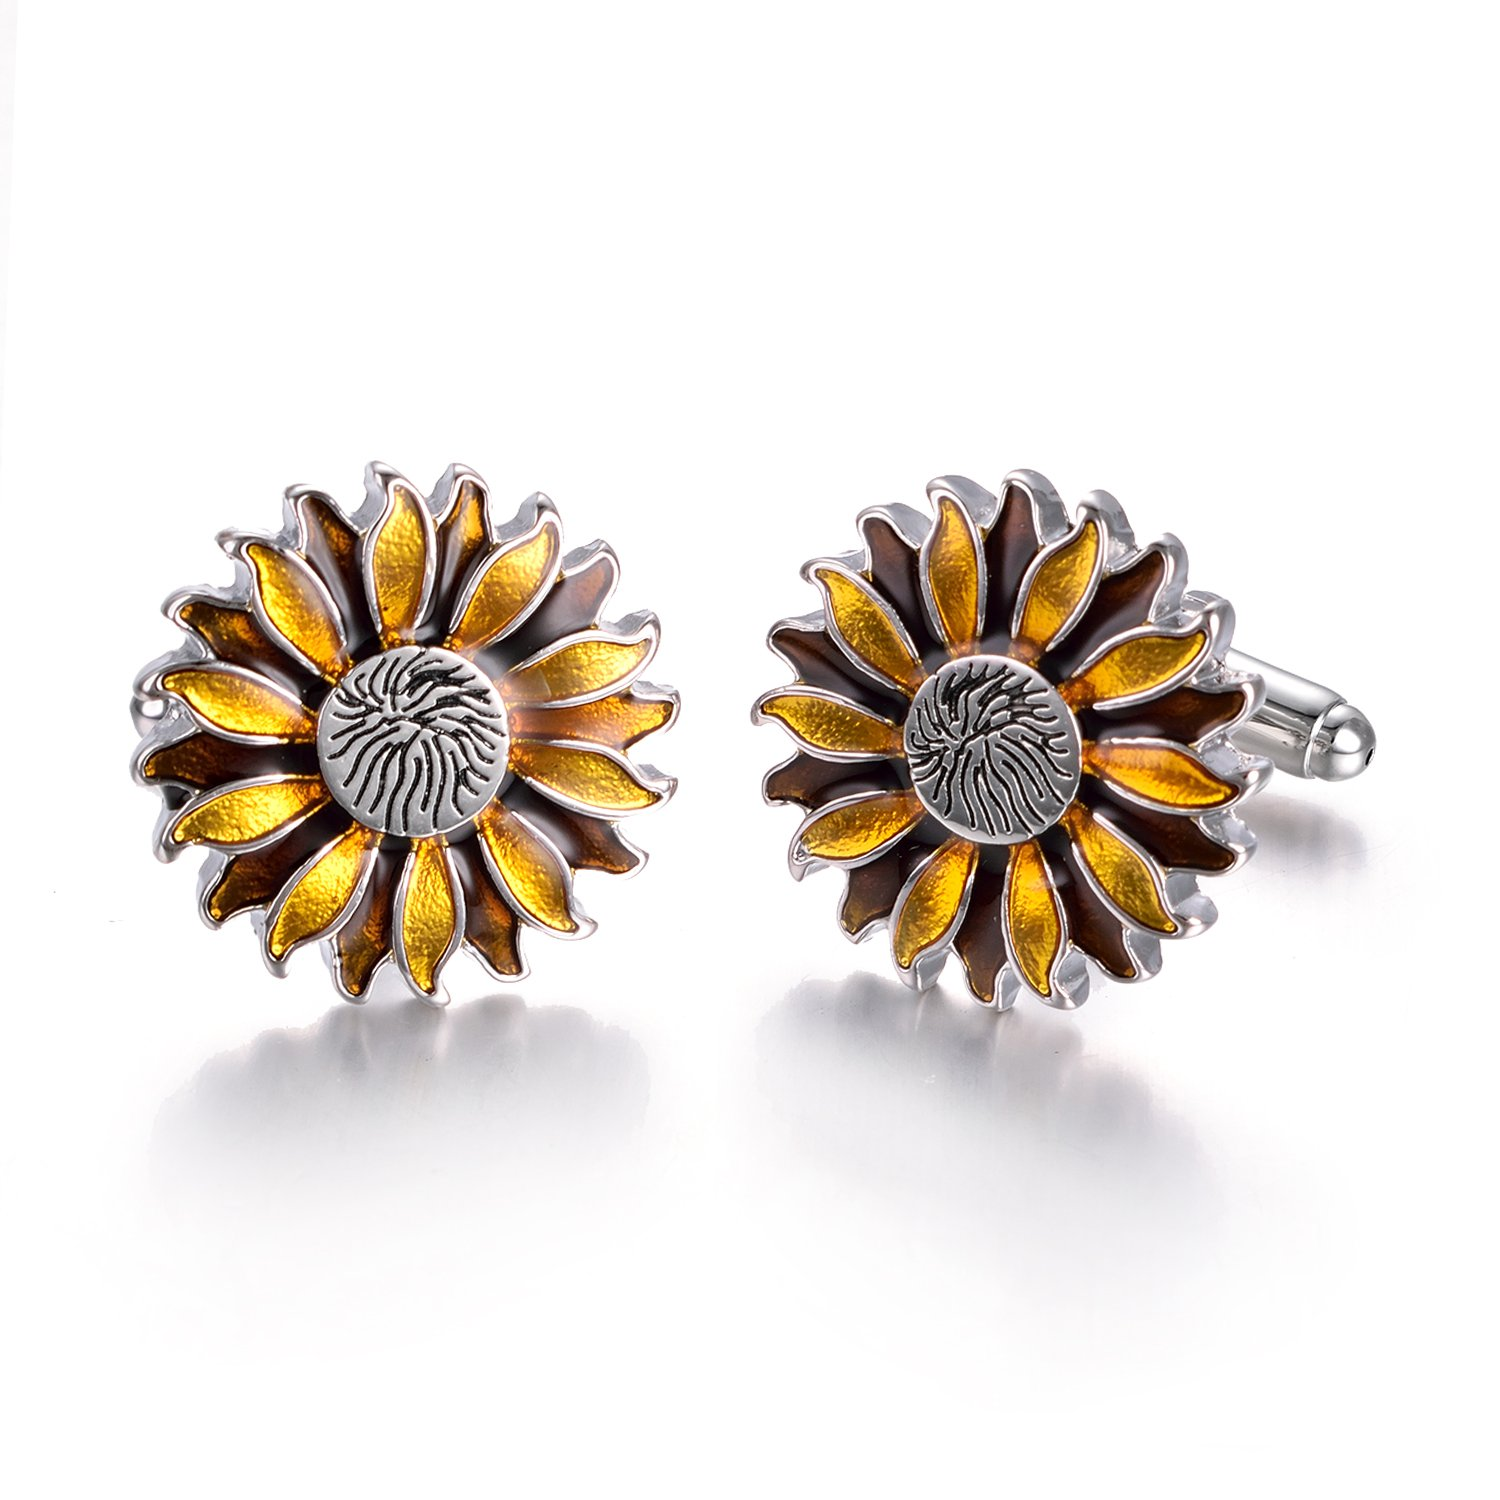 Yoursfs Sunflower Enamel Cufflinks Dark & Light Yellow Bullet Cufflinks Positive Fashion Cufflinks by Yoursfs (Image #1)